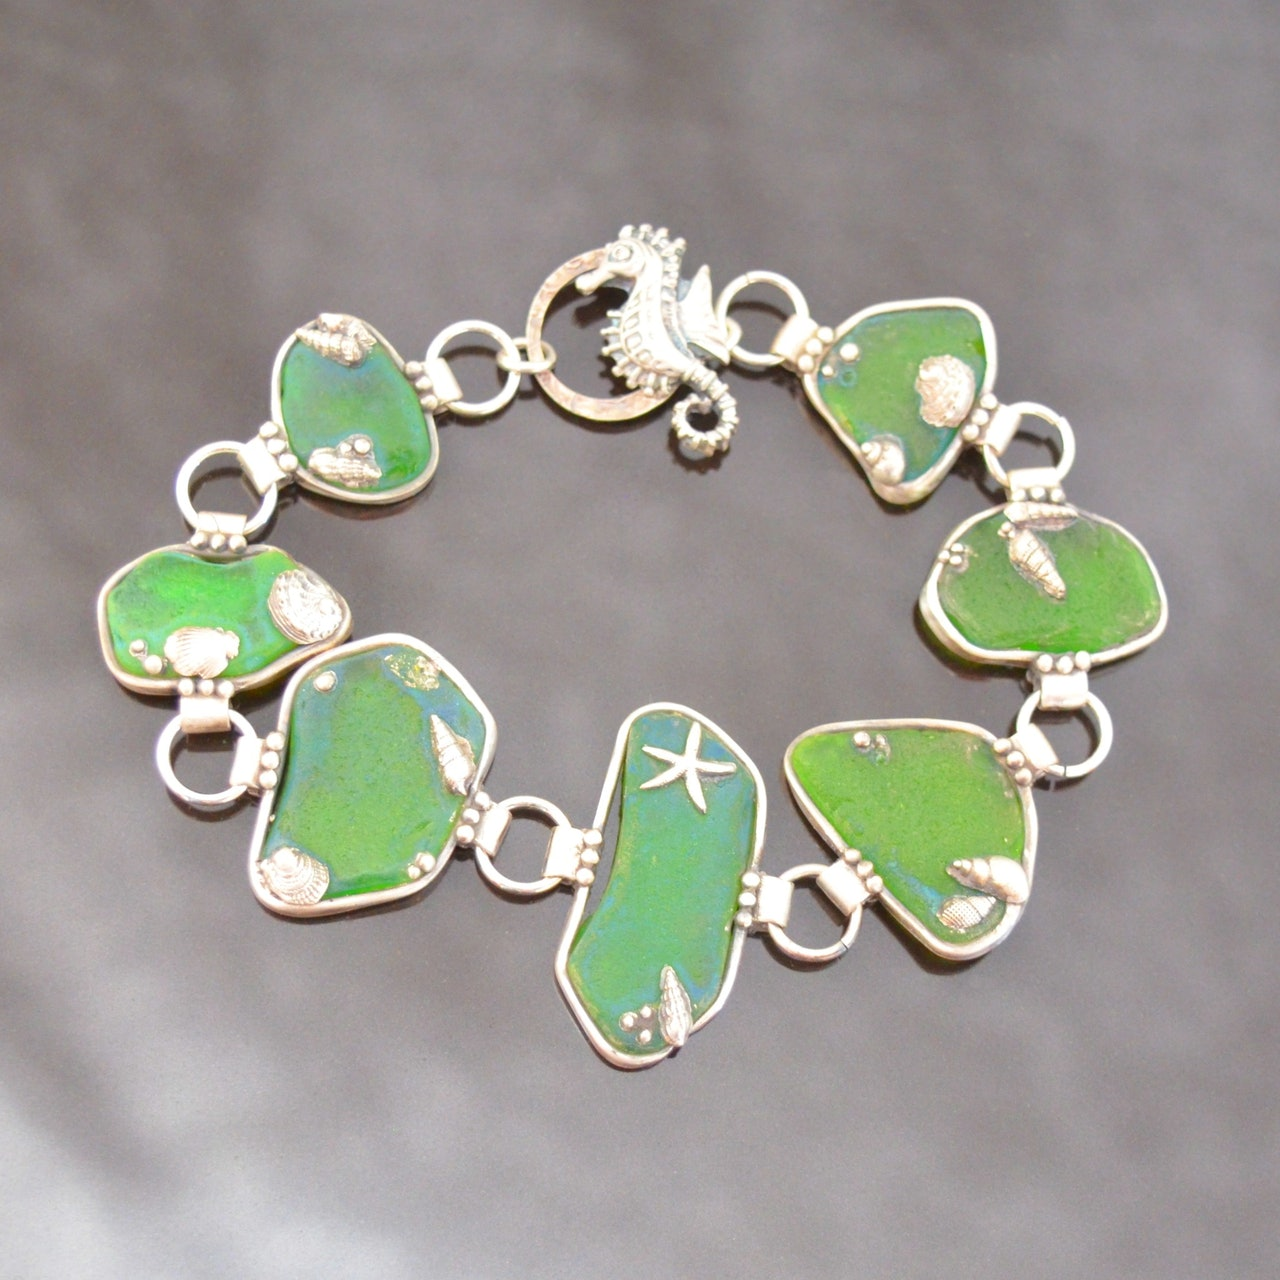 Sea Glass Inspired Silver Clay Jewellery